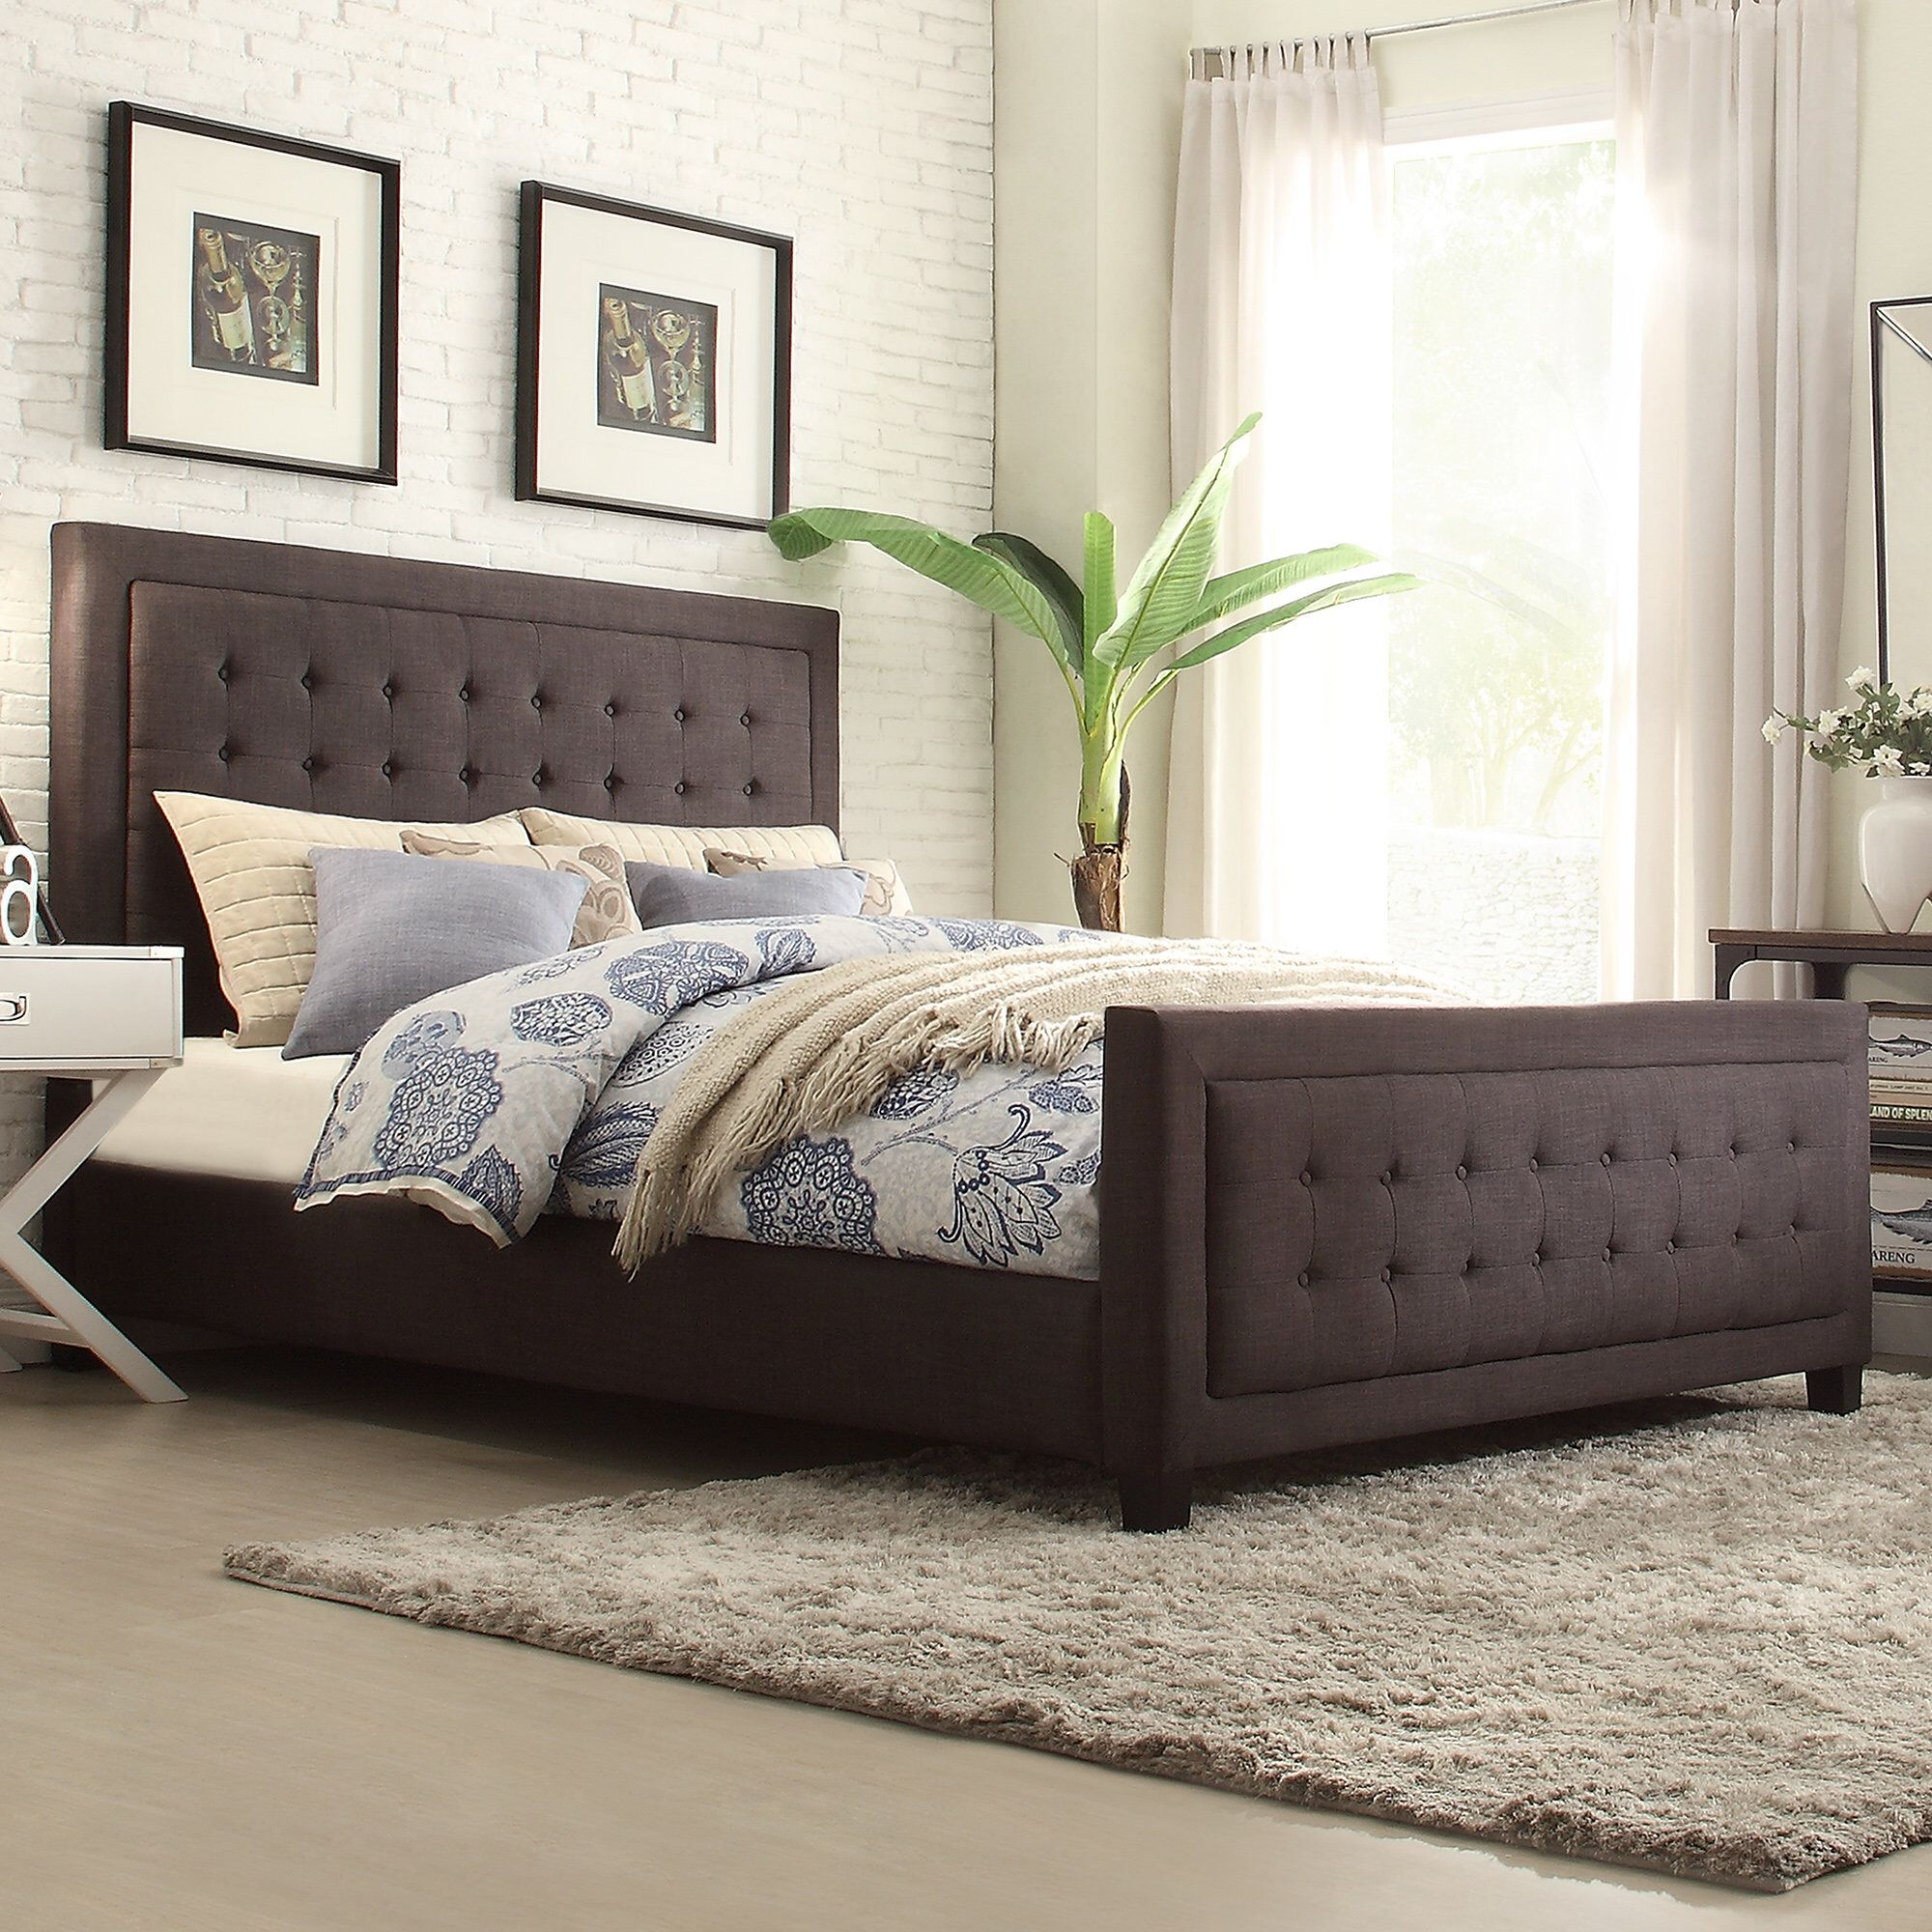 Woodside Upholstered Platform Bed Upholstered panel bed